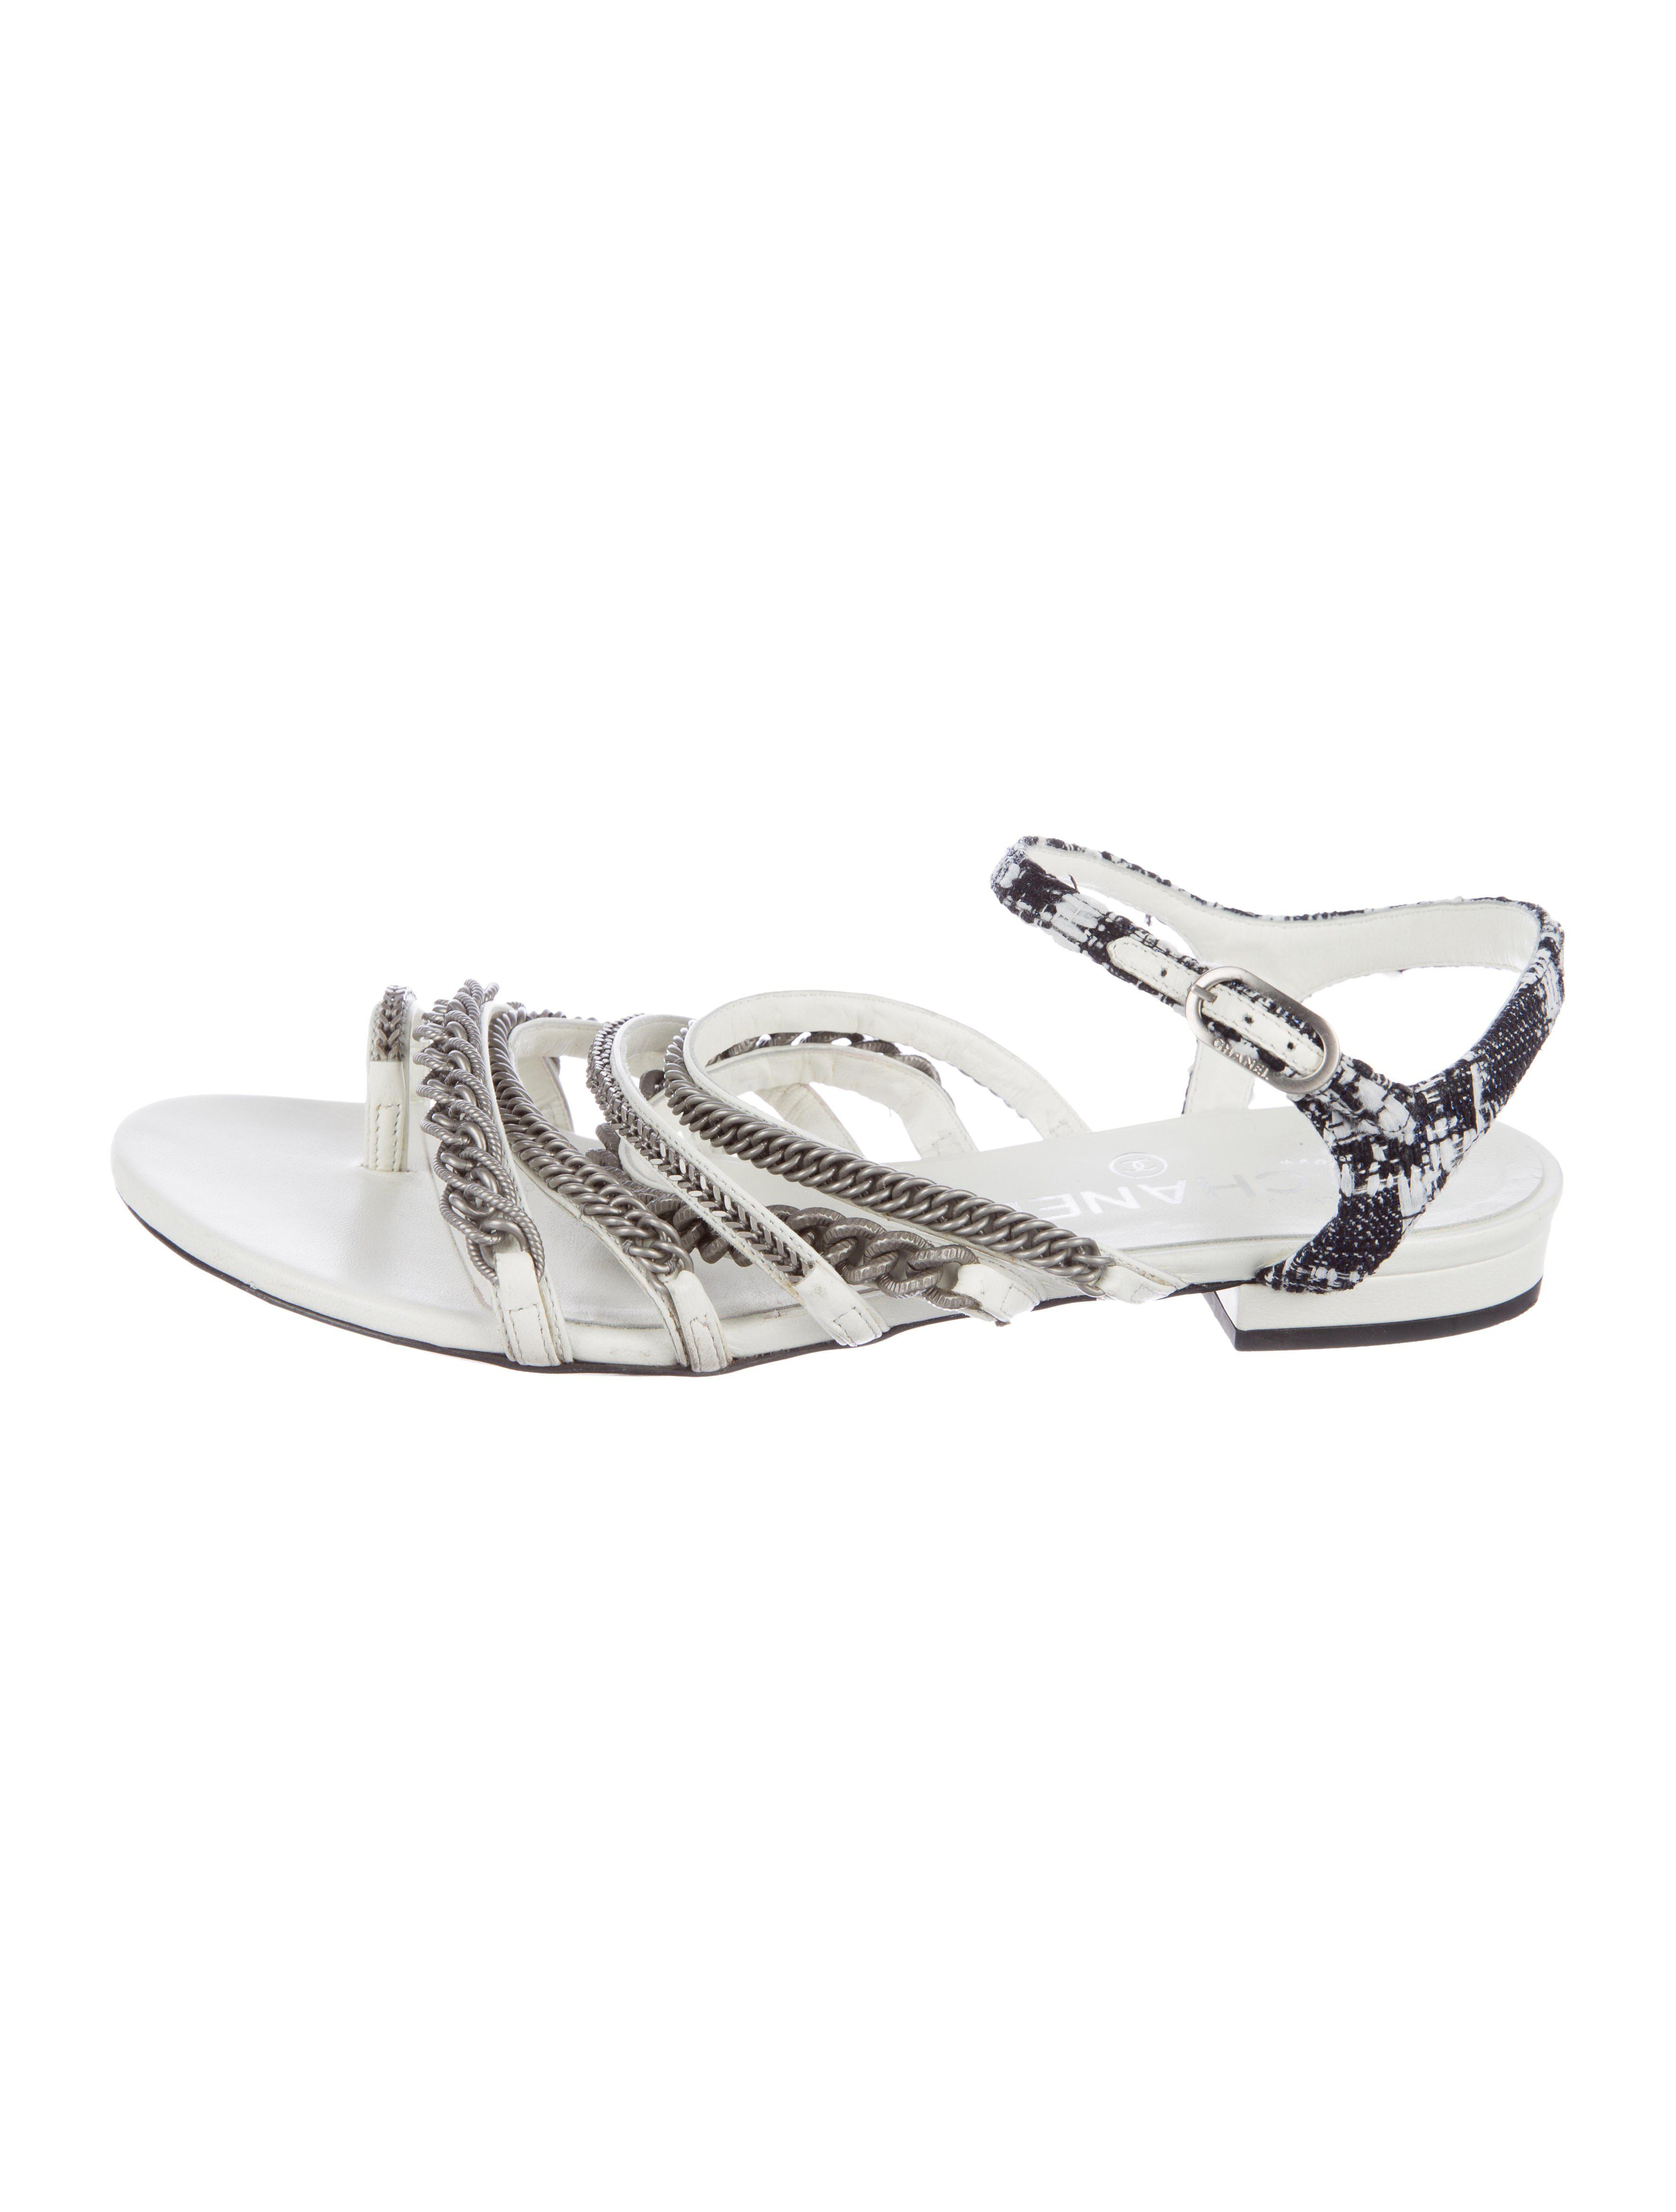 070eaf9696d239 Lyst - Chanel 2015 Chain-link Embellished Sandals White in Metallic